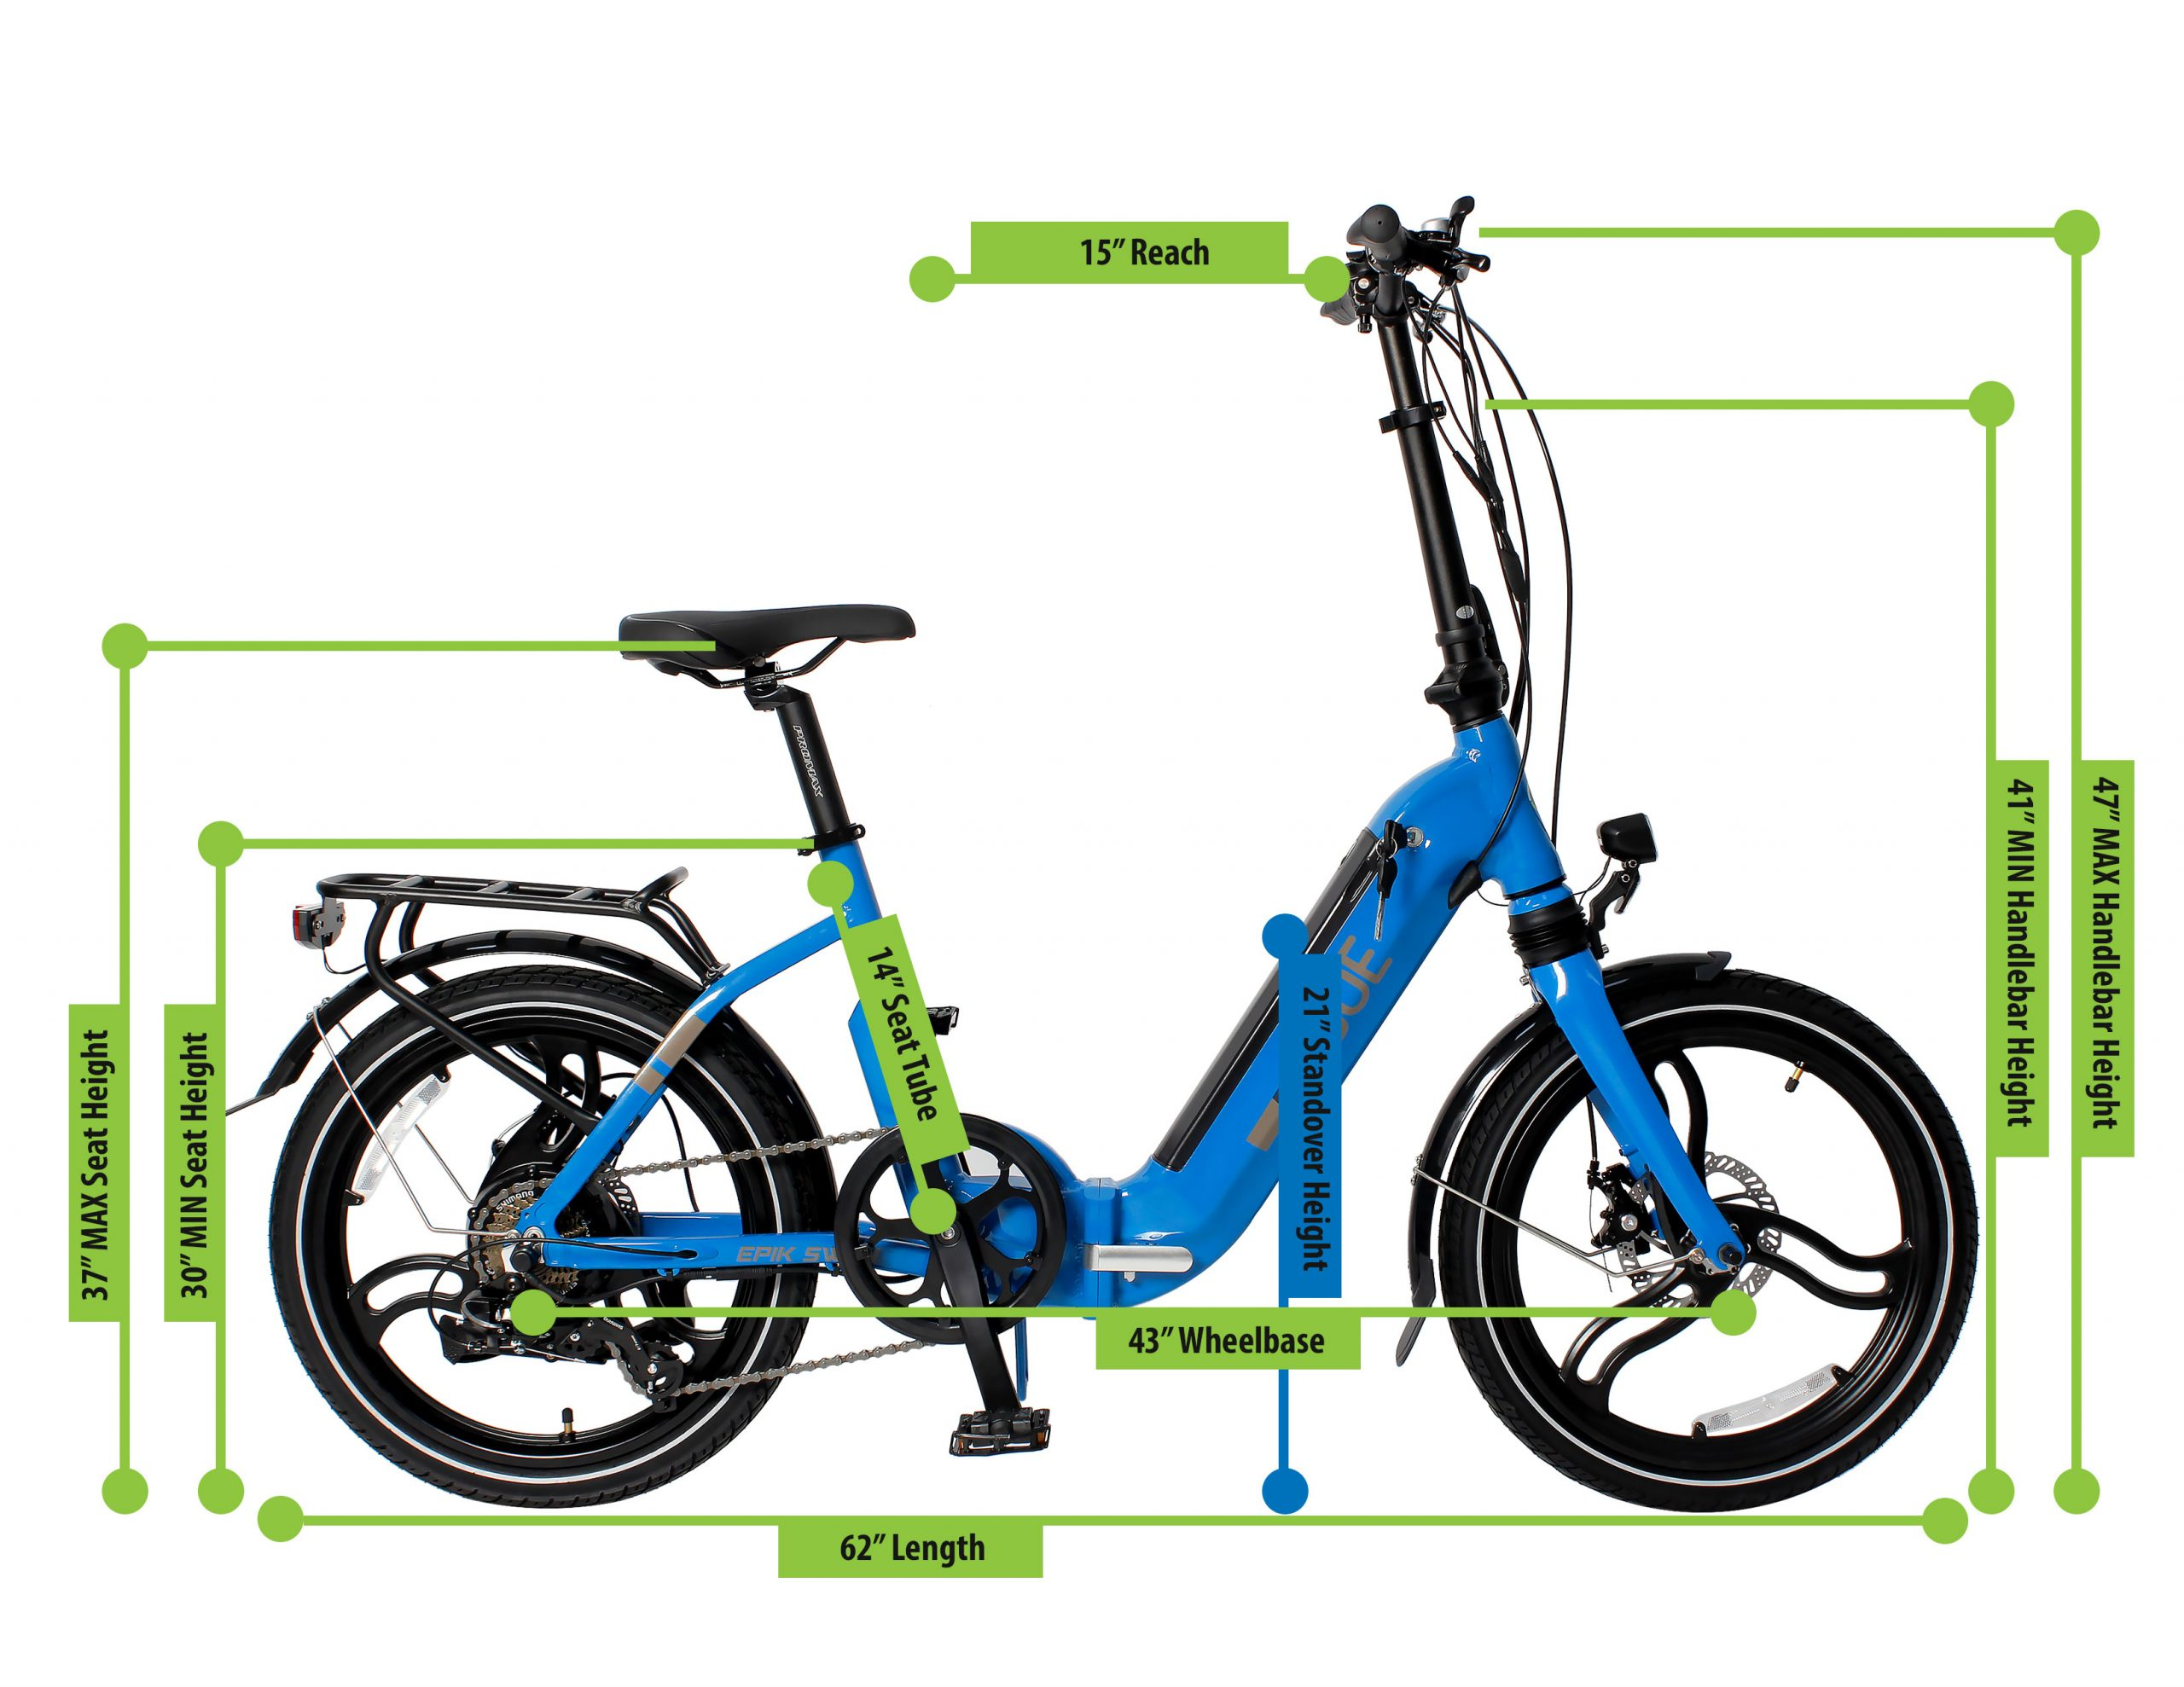 e-JOE EPIK Swan Step Through Folding Electric Bike, Size